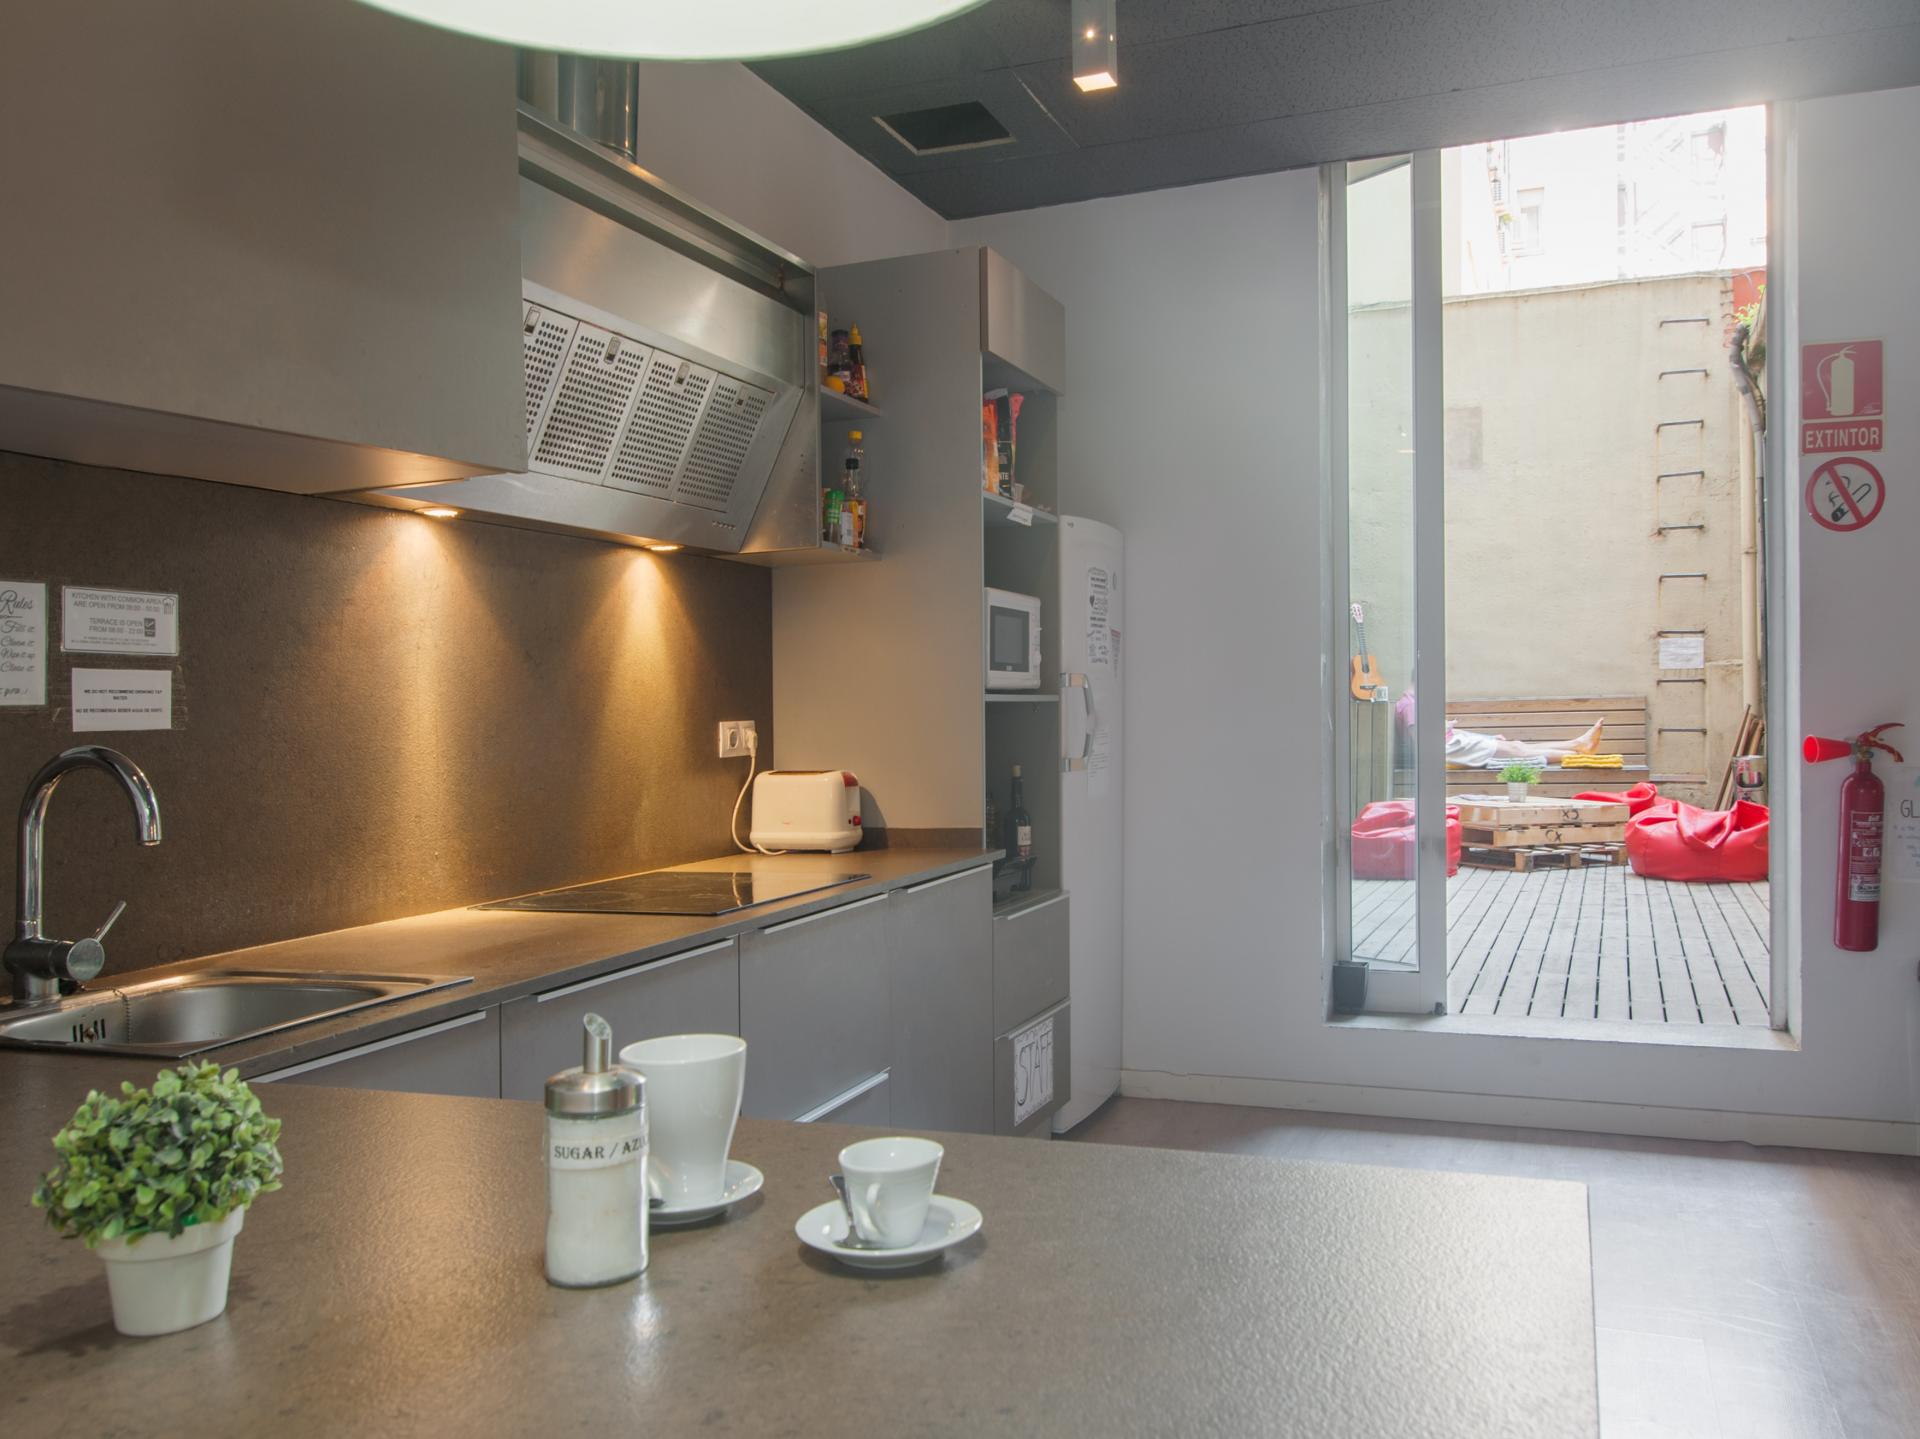 Albergue  No Limit Barcelona Central